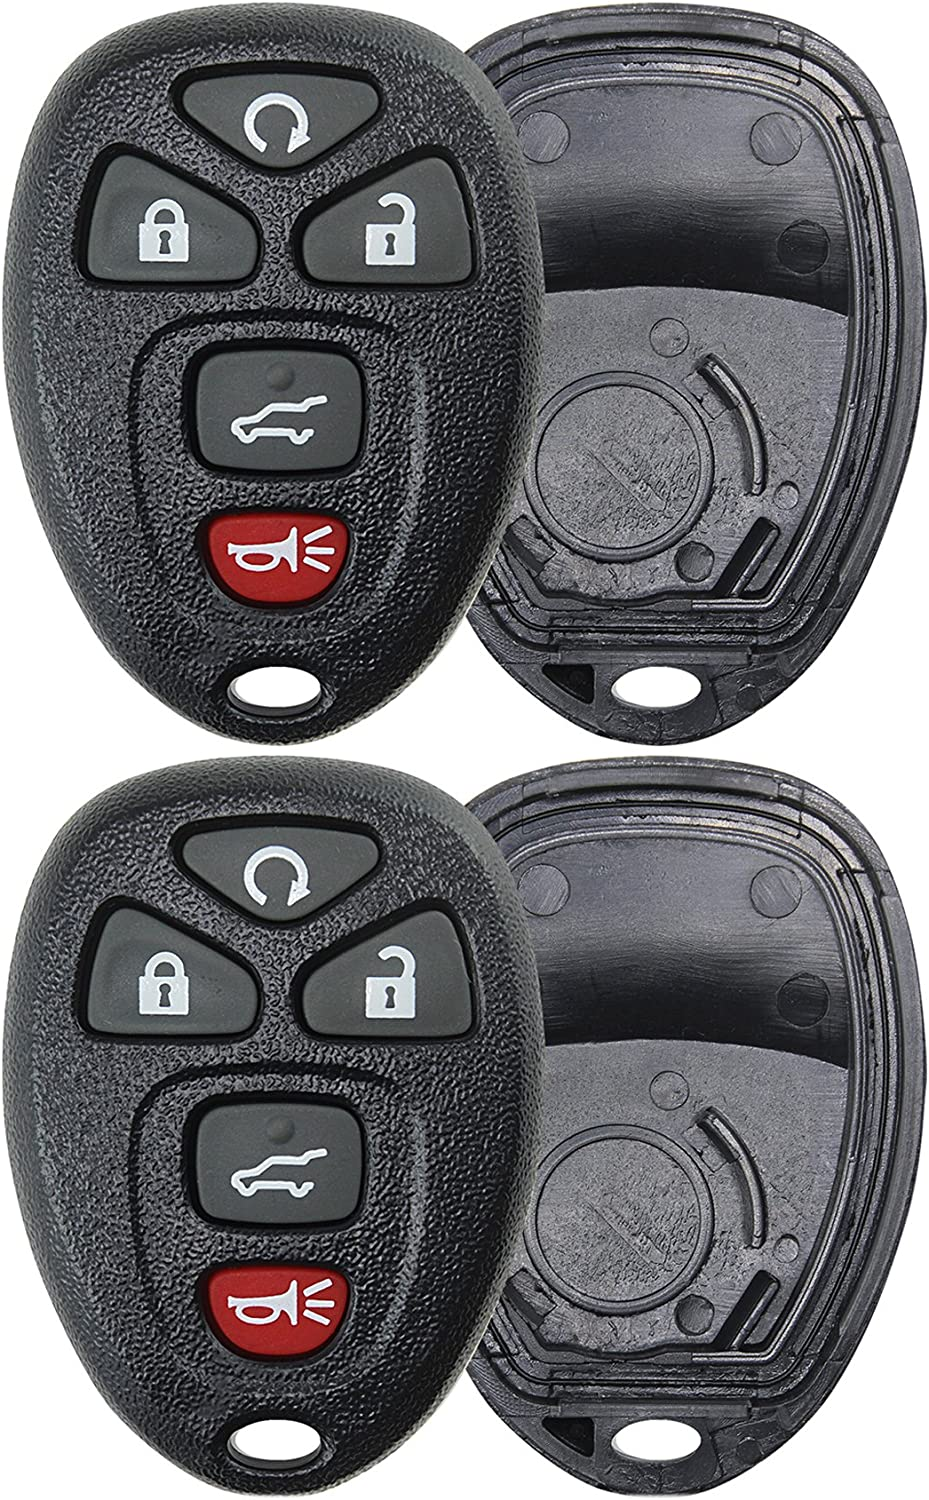 2 KeylessOption Replacement 5 Button Keyless Entry Remote Key Fob Shell Case and Button Pad -Black